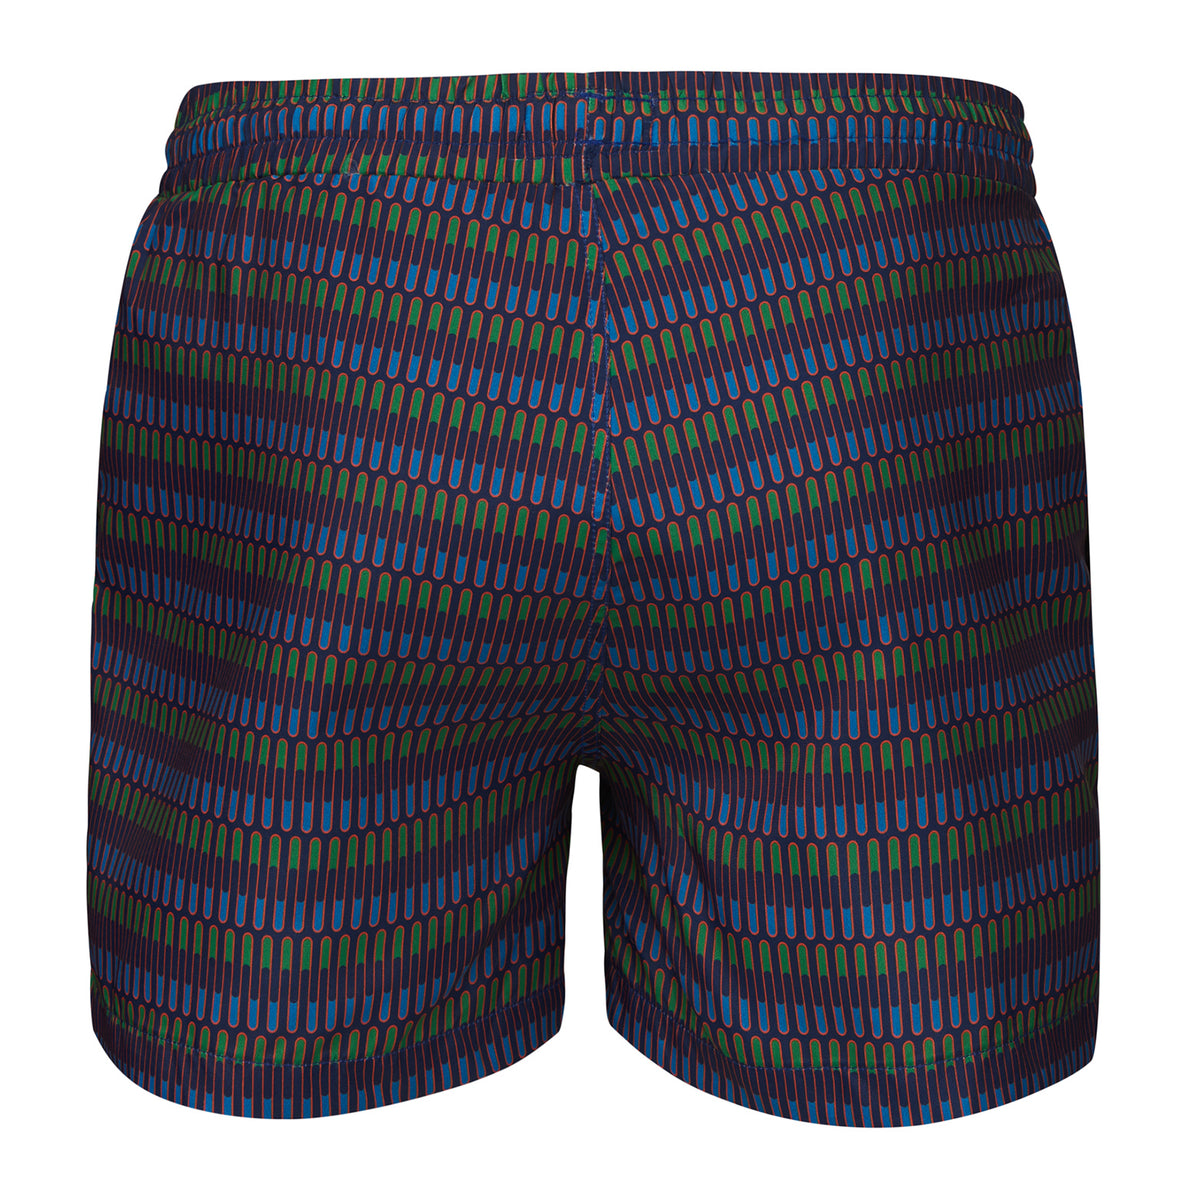 Breeze Swimshort Long - background::white,variant::Jolly Wave